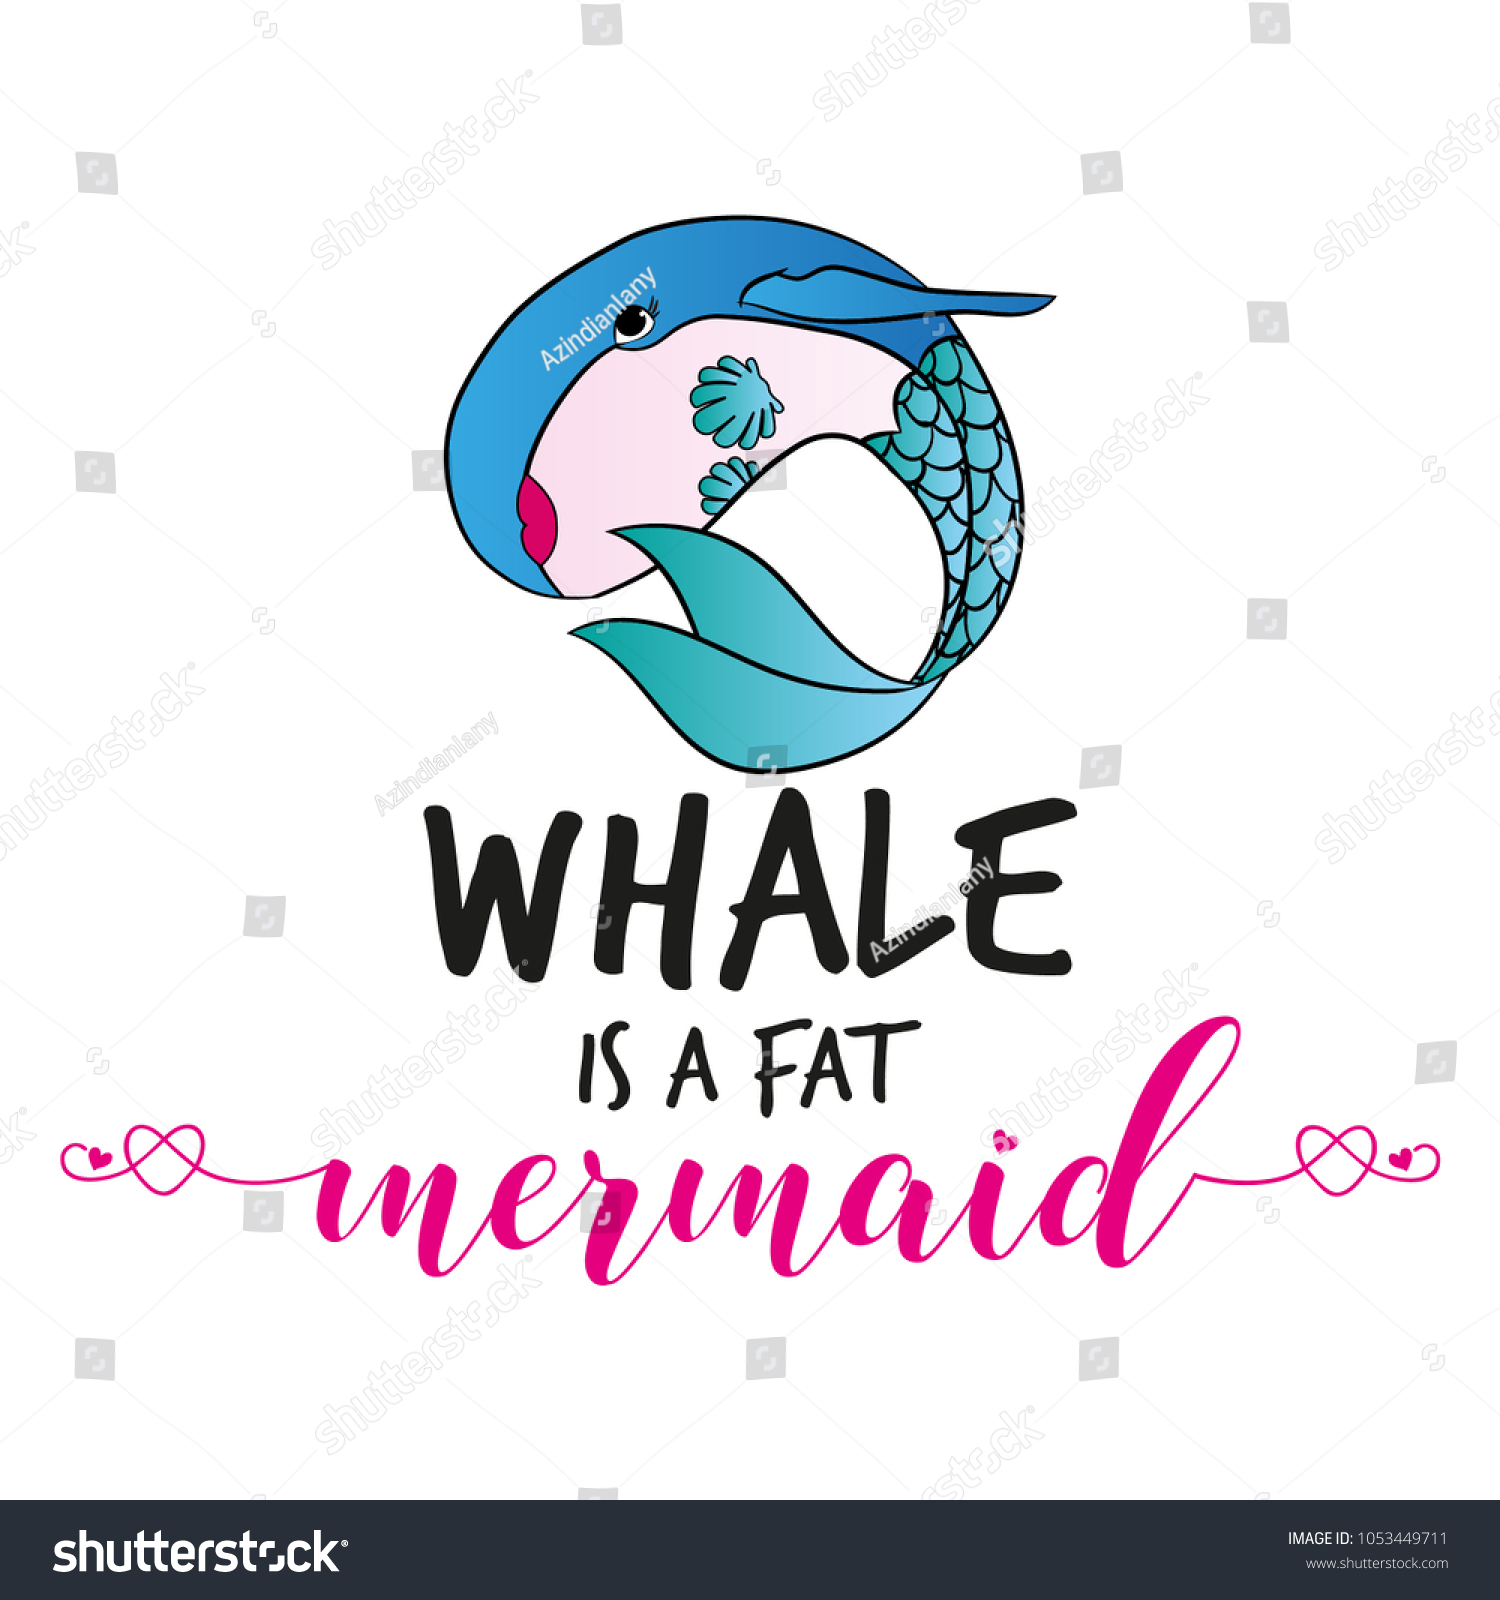 Whale Fat Mermaid Funny Vector Text Stock Vector (Royalty ...